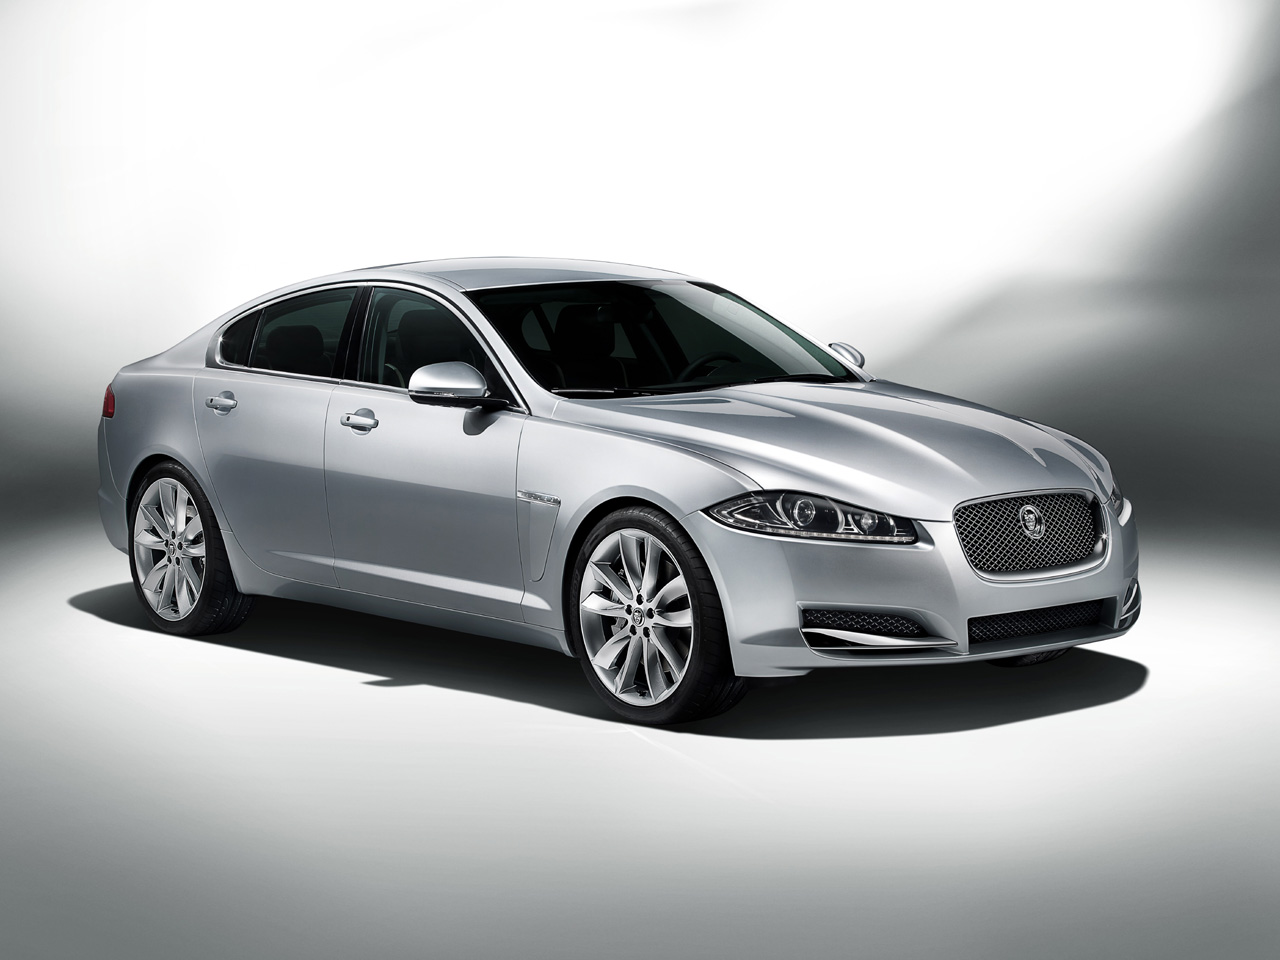 Jaguar Xf Amazing Car